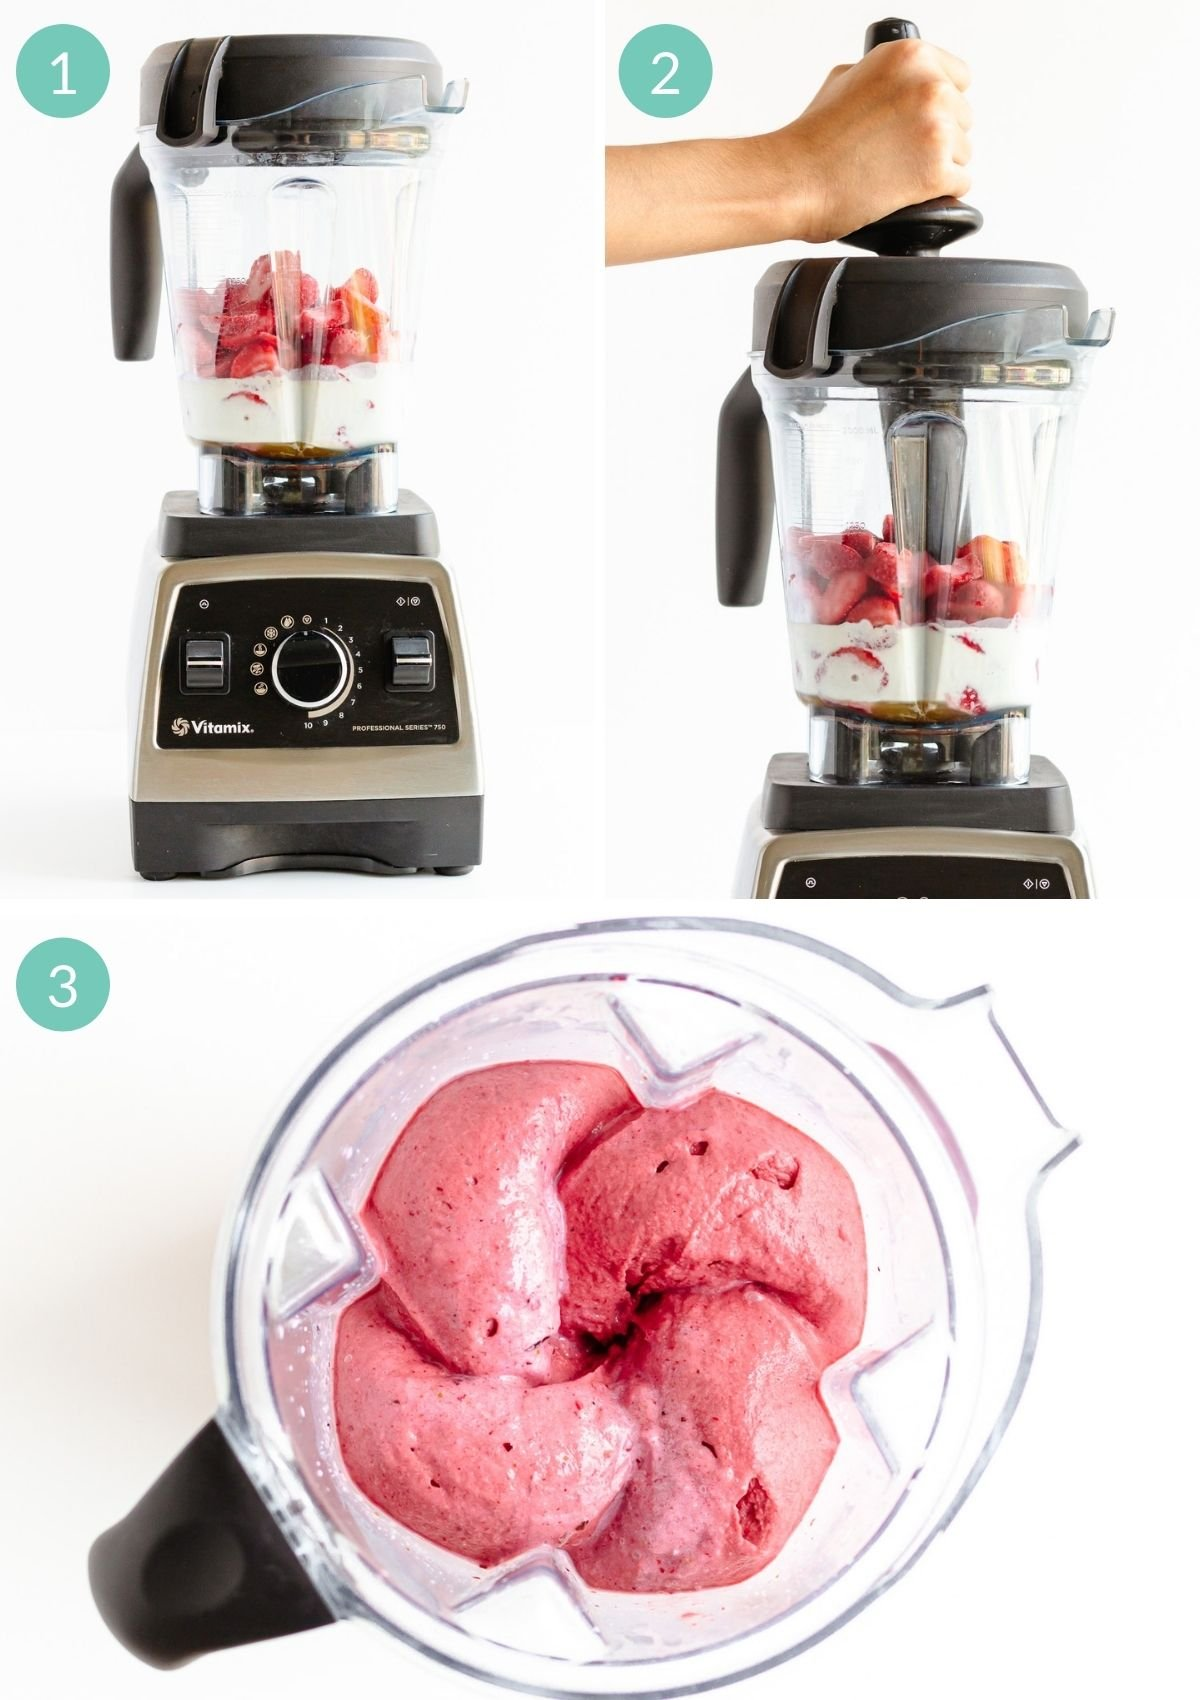 Photo collage showing step by step how to make ice cream in the Vitamix blender using frozen fruit.